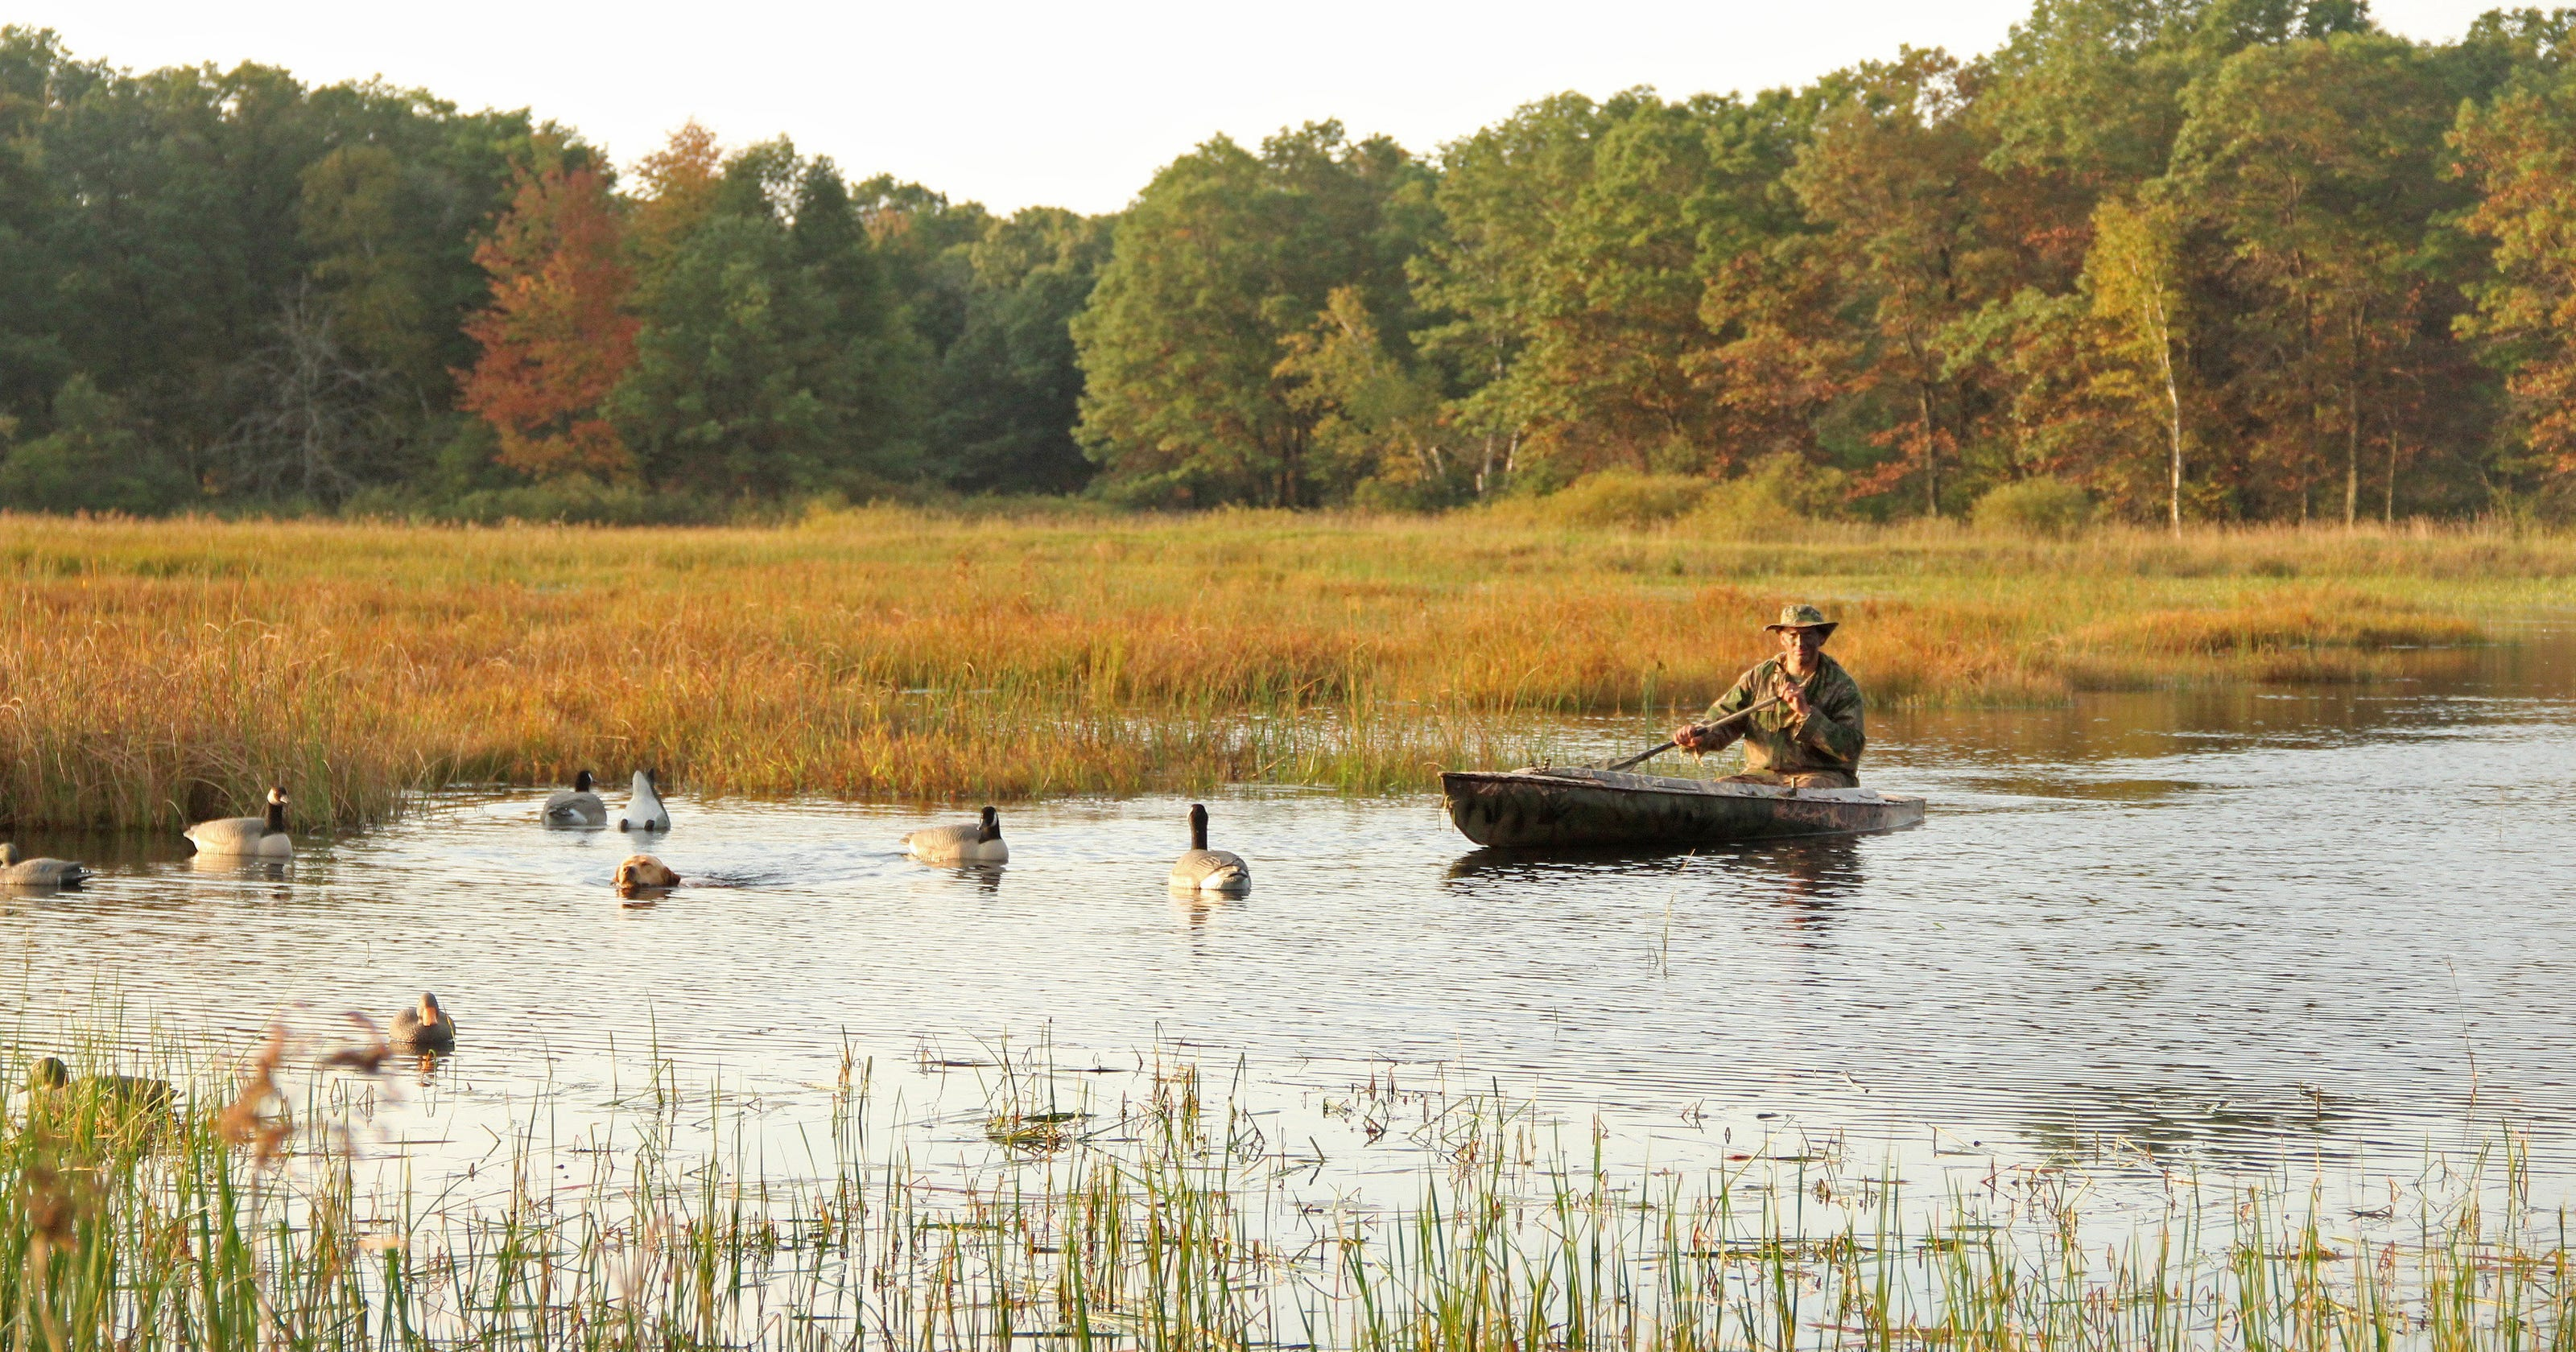 Smith: Spate of waterfowl hunting deaths puts focus on safety